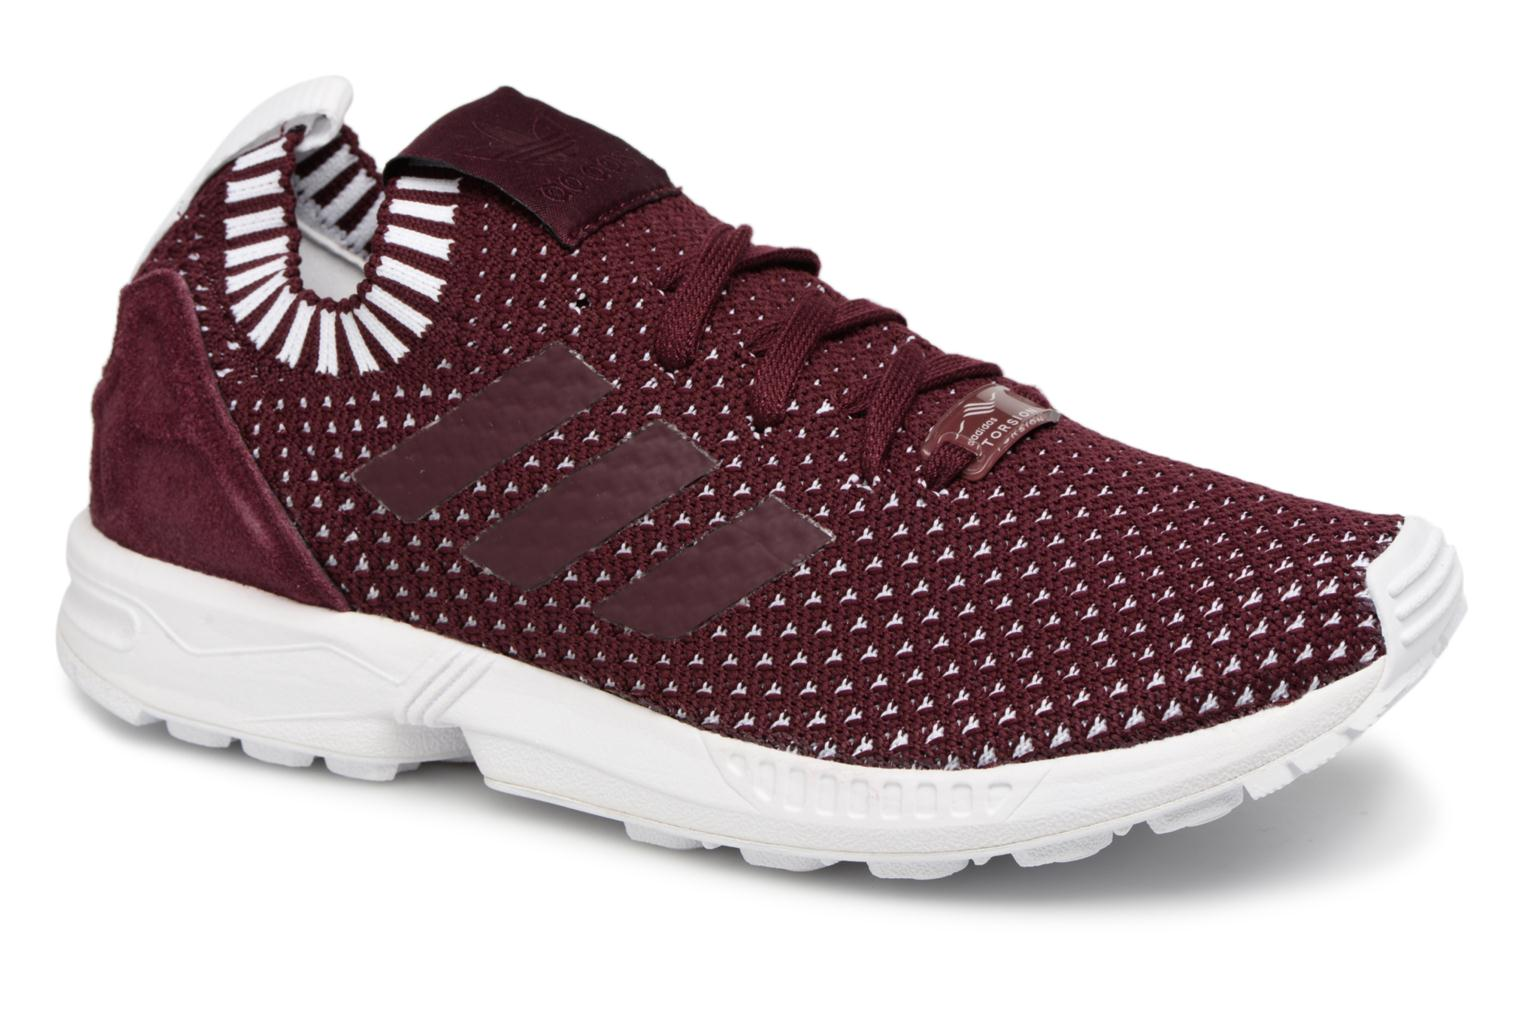 Zx Flux Pk W par Adidas Originals